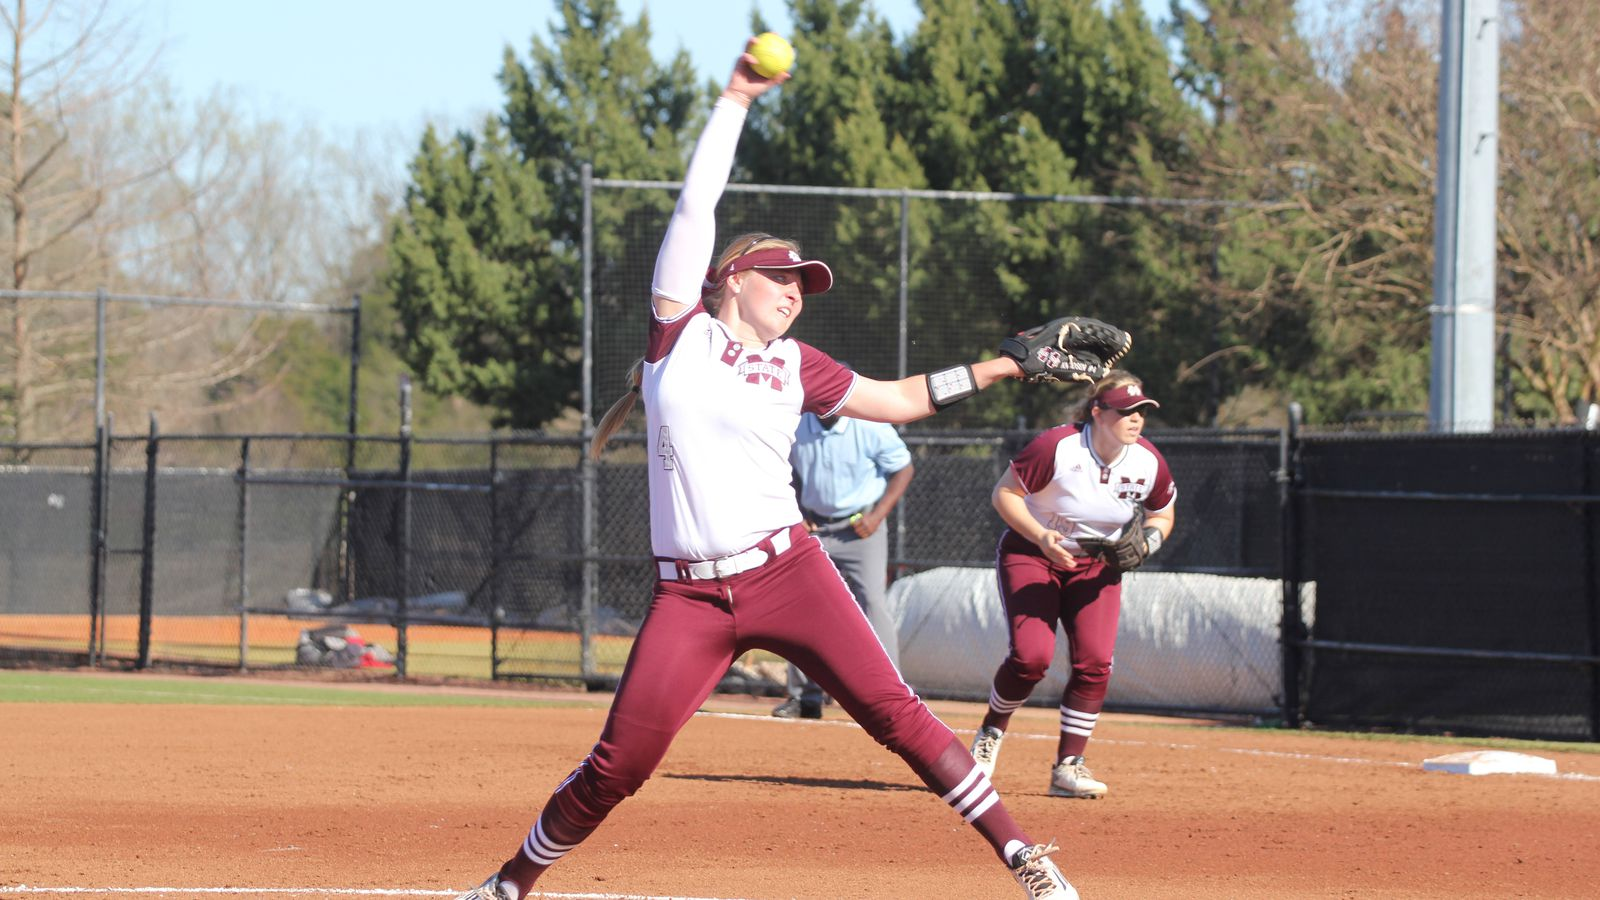 Mississippi State Softball Defeats Southern Illinois University 5-2 - For Whom the Cowbell Tolls